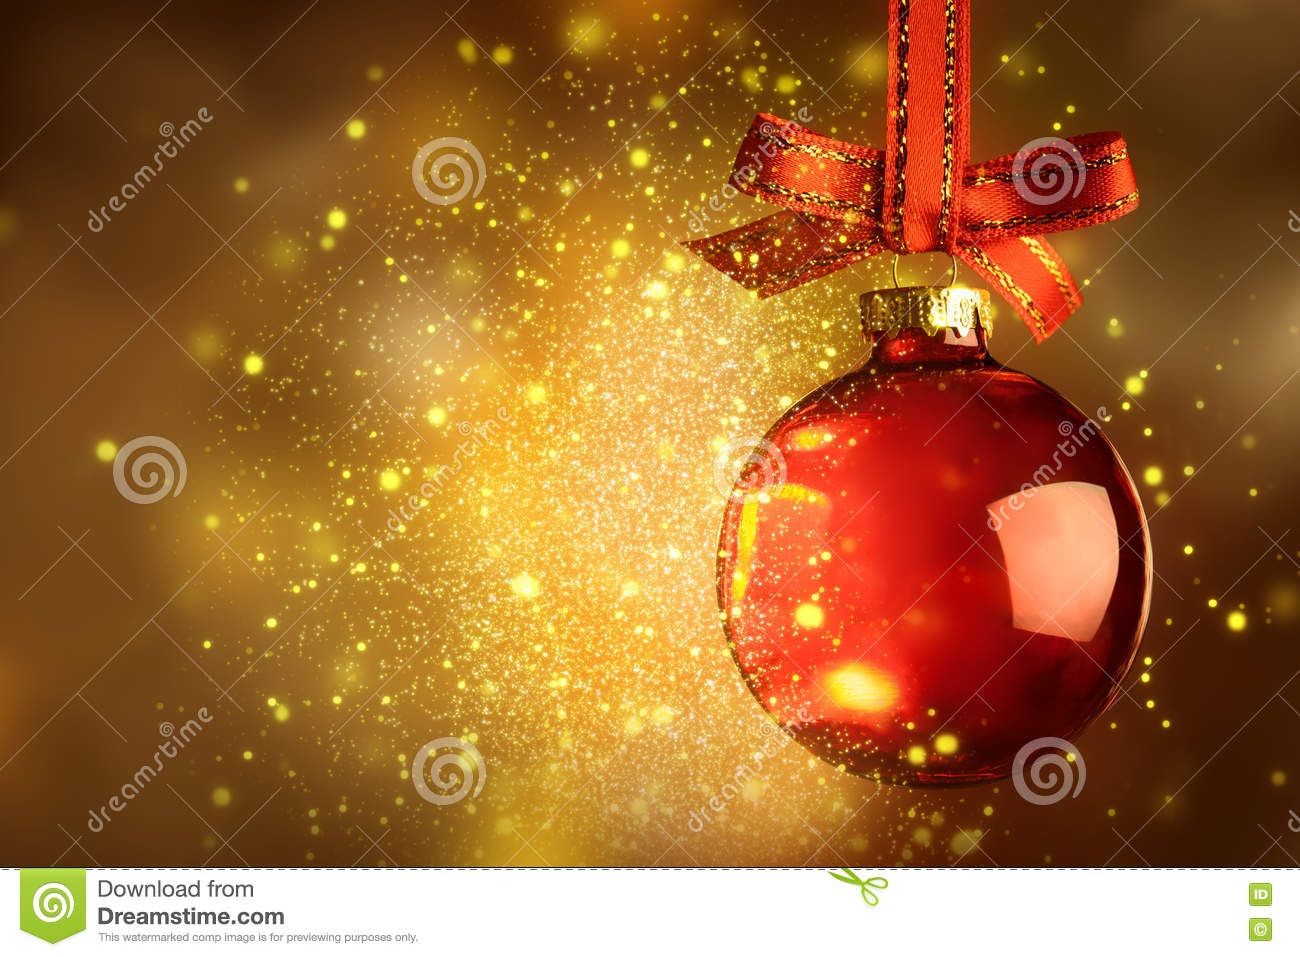 Christmas red bauble with sparkle over magic glitter shiny background